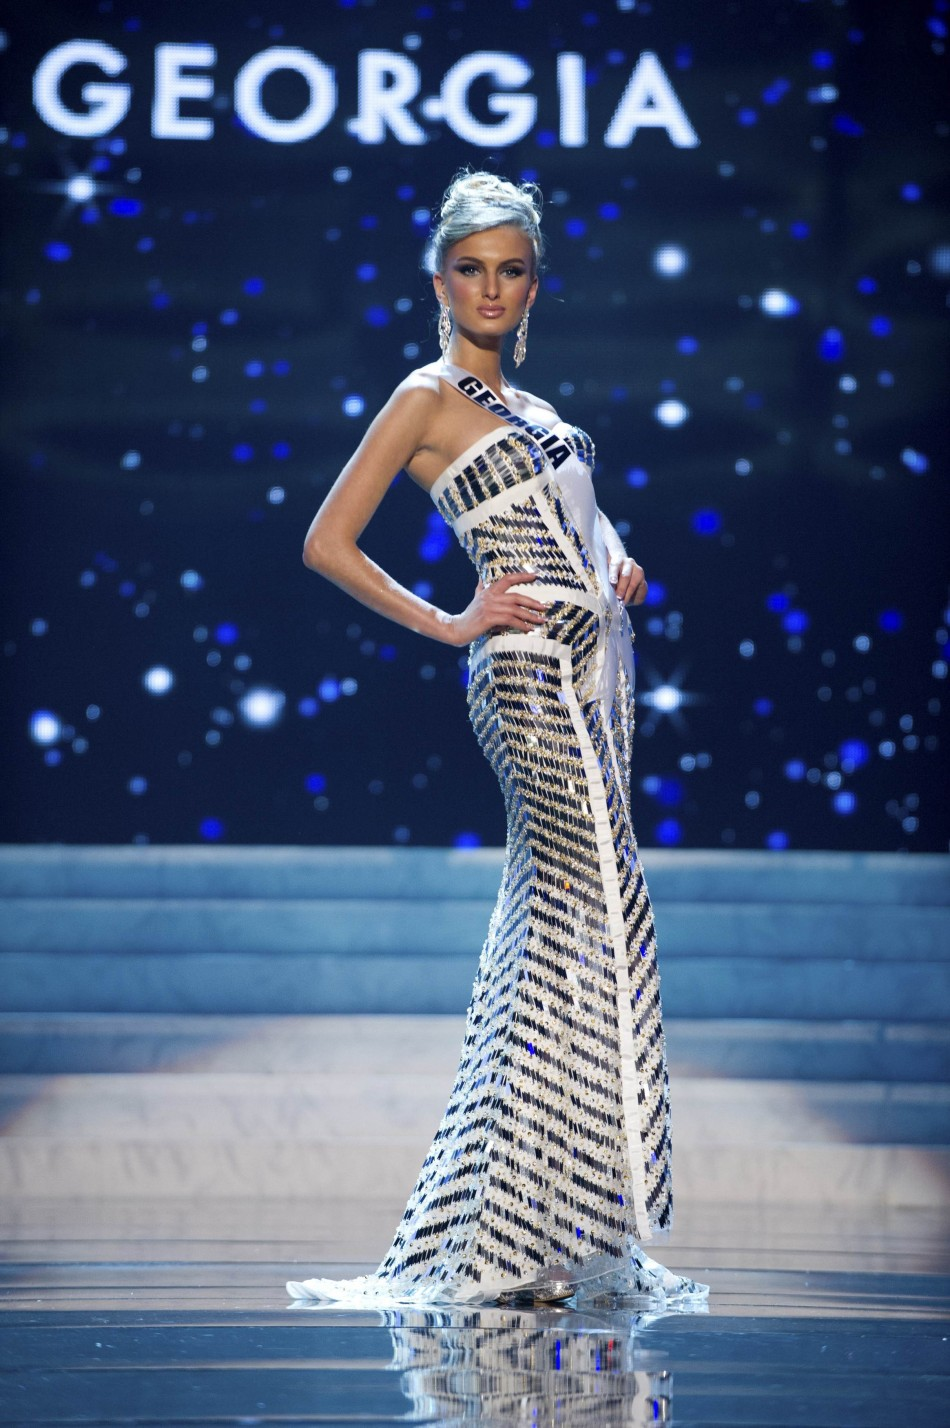 Miss Georgia 2012 Shedania competes in an evening gown of her choice during the Evening Gown Competition of the 2012 Miss Universe Presentation Show in Las Vegas